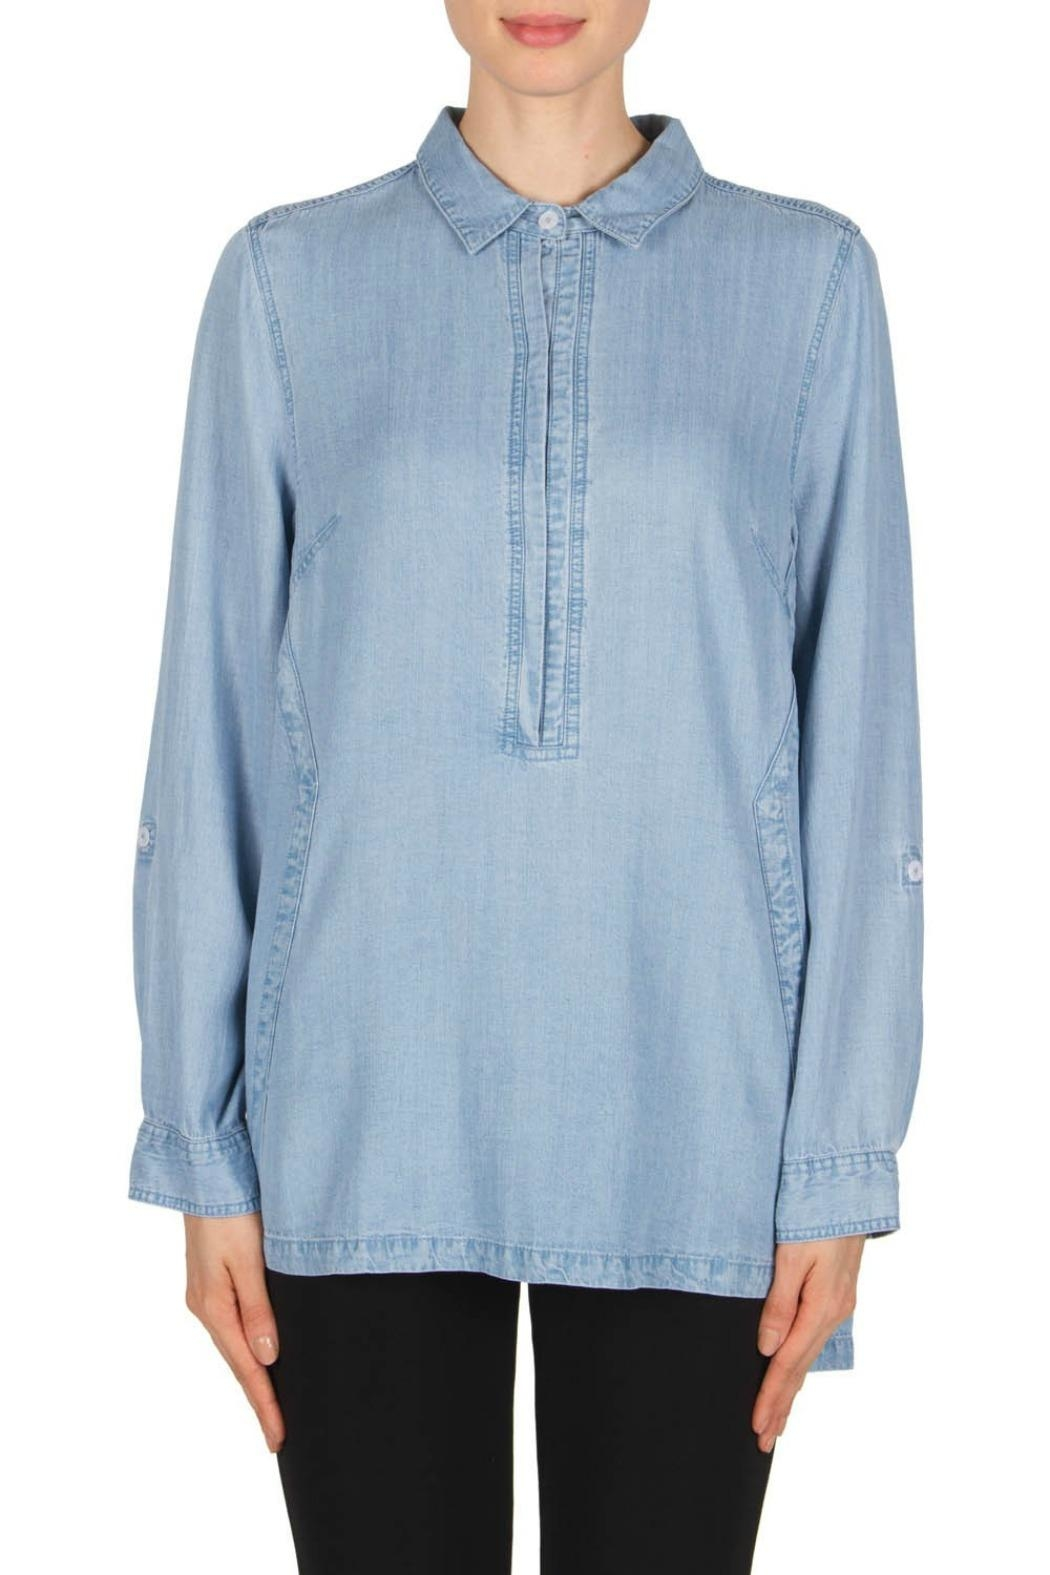 Joseph Ribkoff Denim Blouse Style - Front Cropped Image